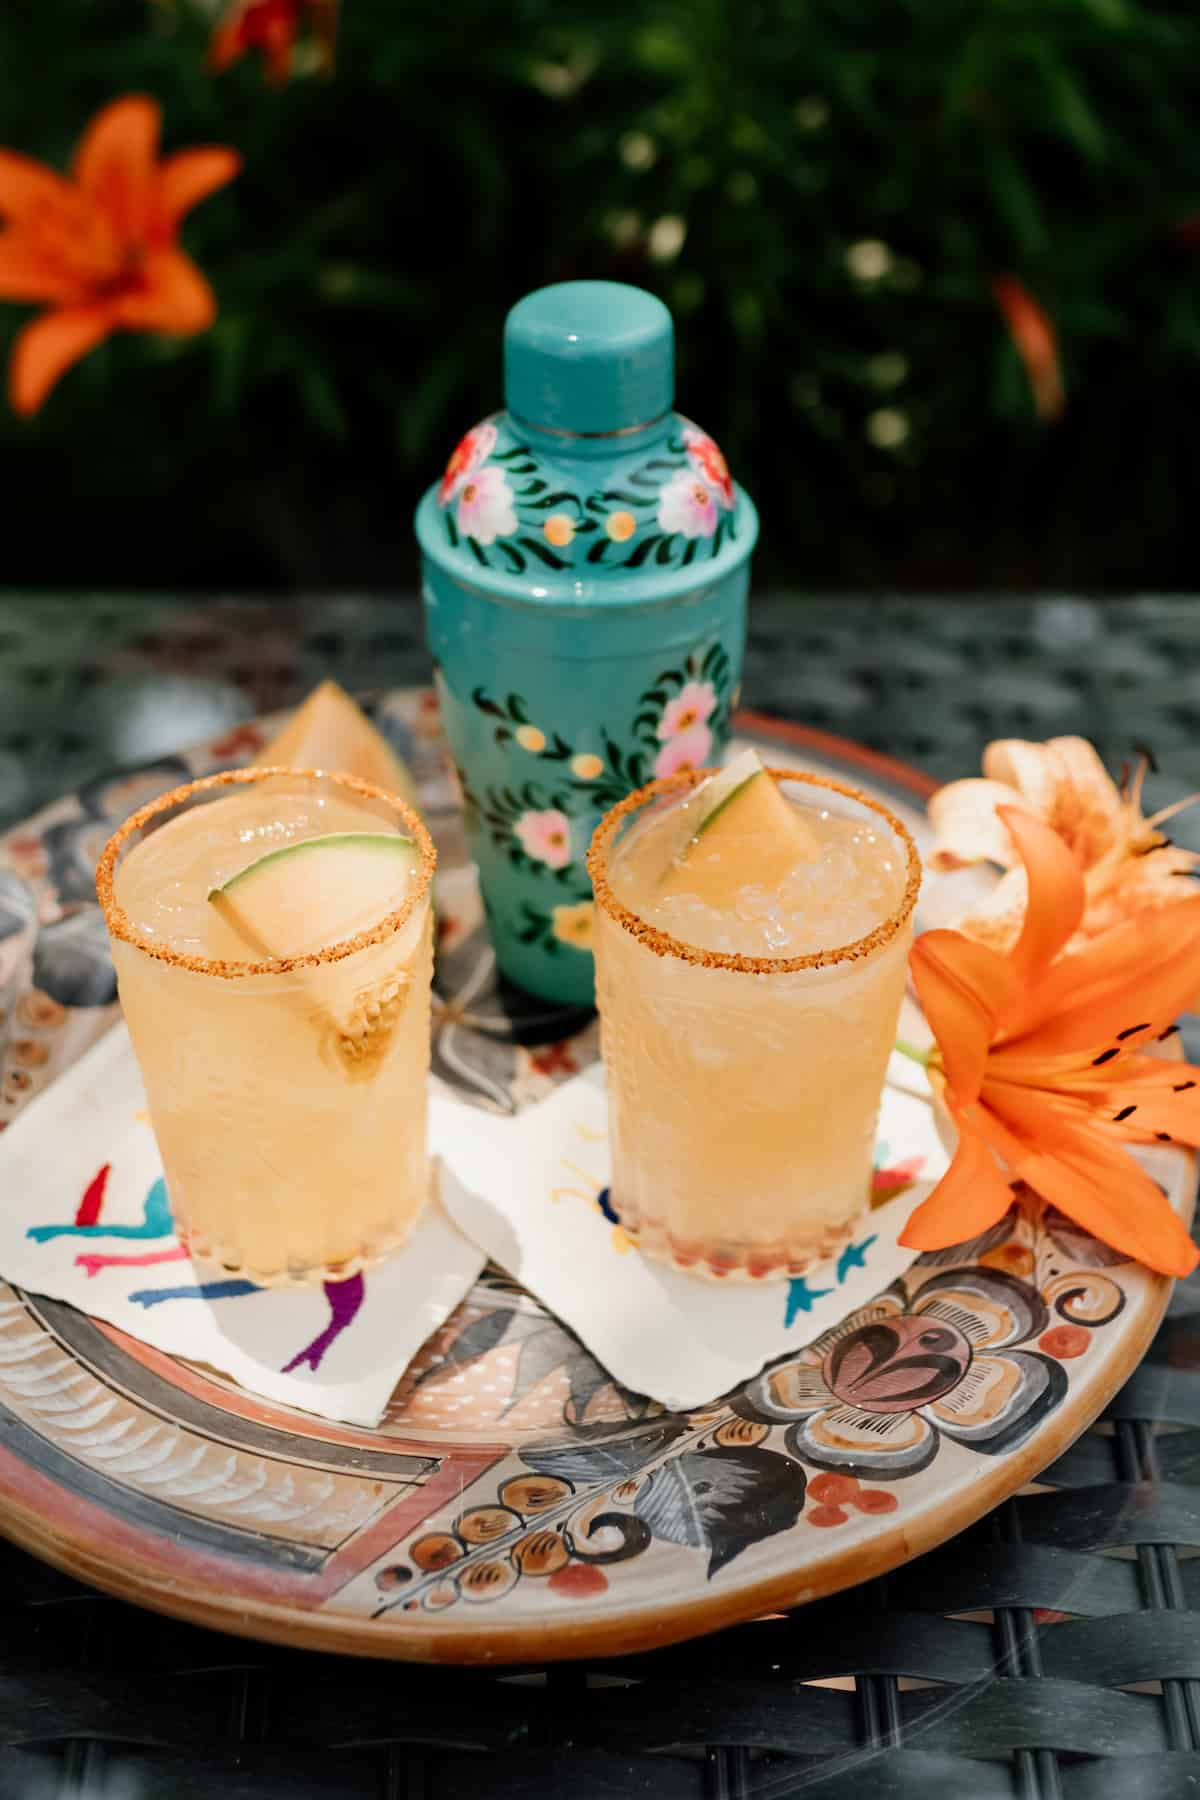 two glasses of Cantaloupe Melon Margaritas rimmed with Tajin and Lilly flowers on the side and cocktail shaker in the background